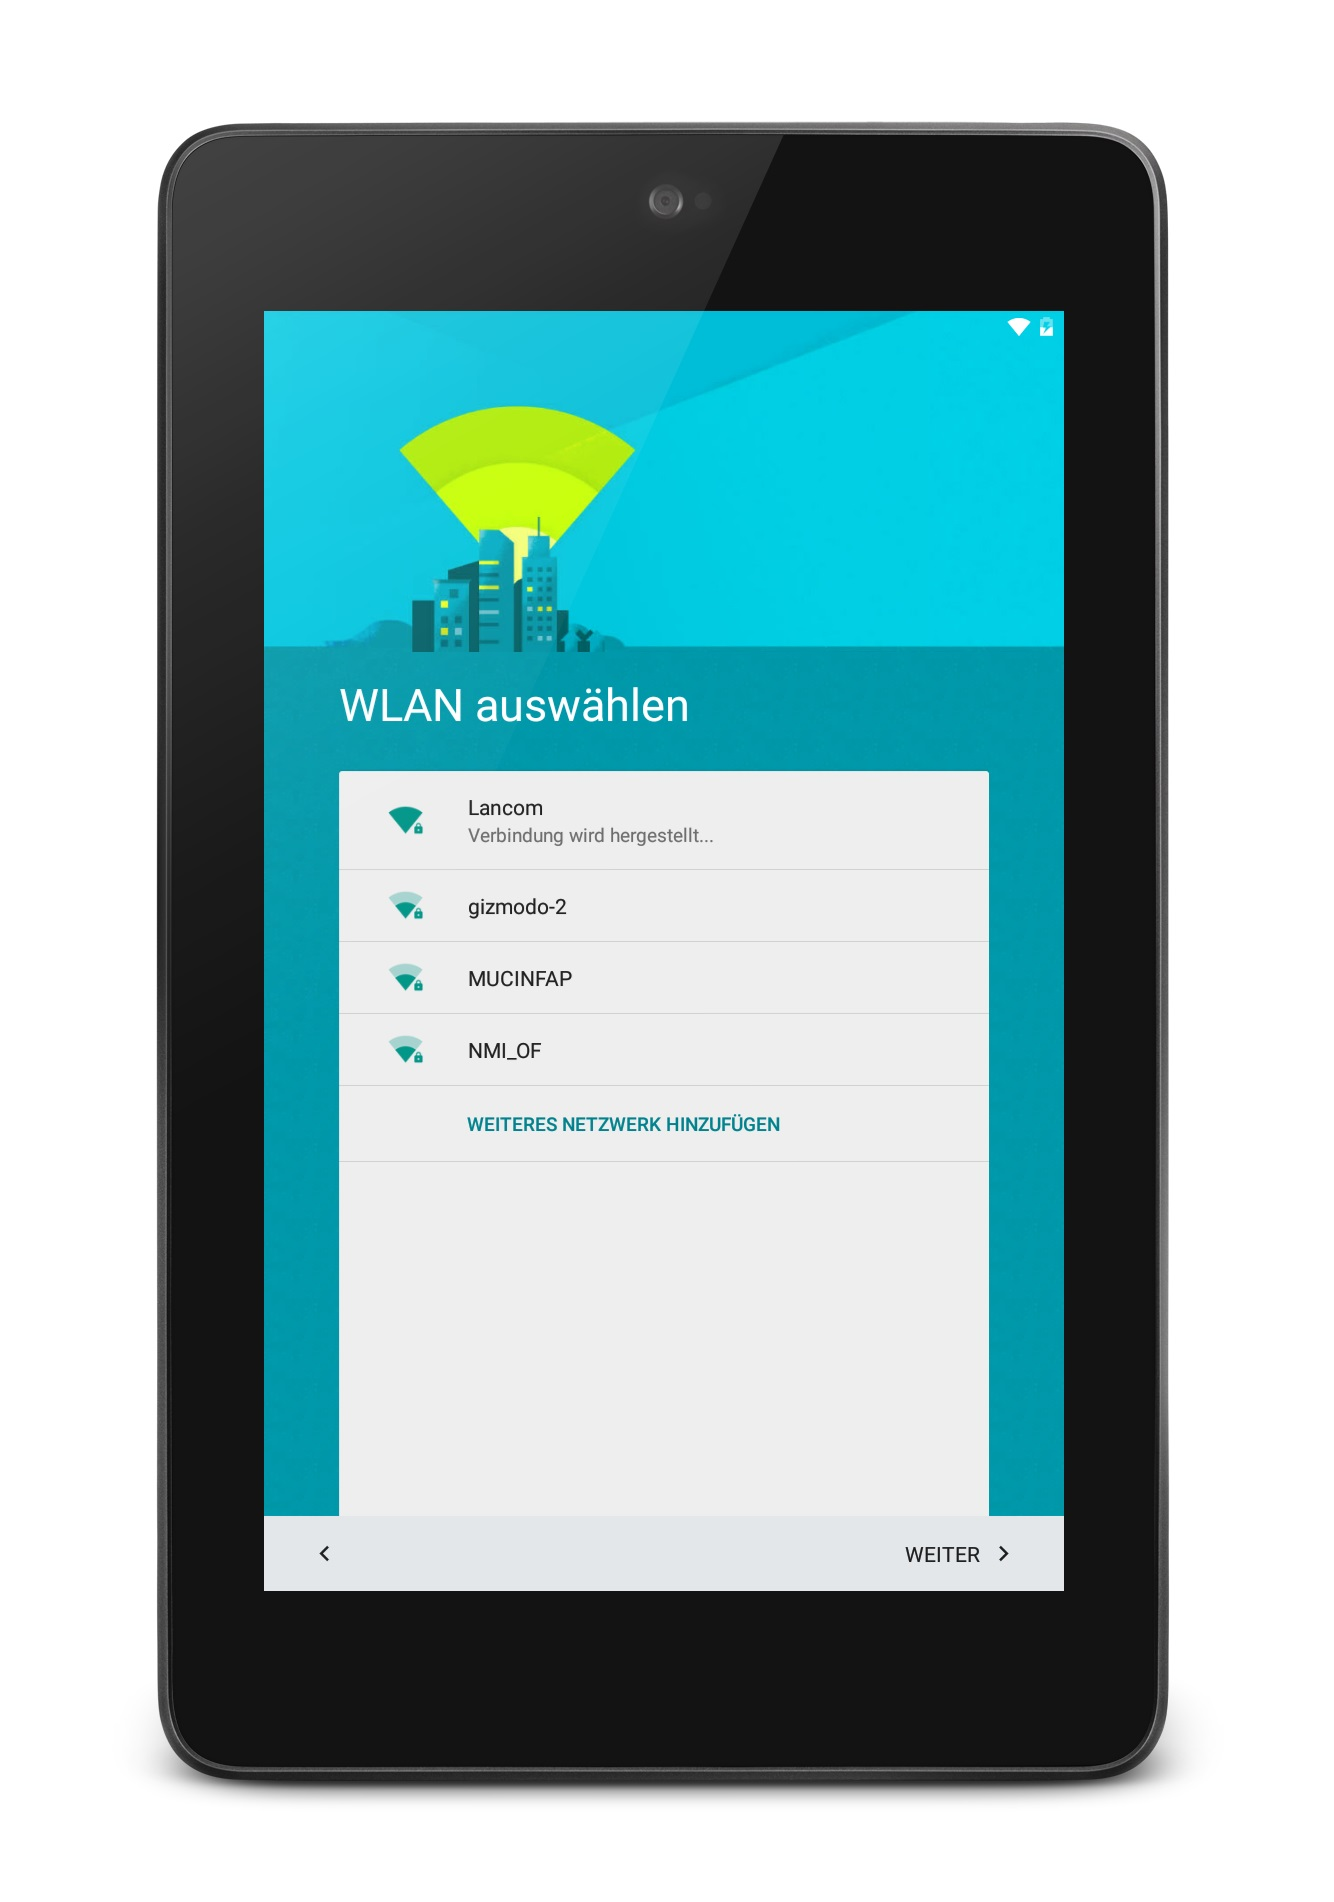 nexus_7_android-5_0_lollipop-start-wlan-vbdg-04